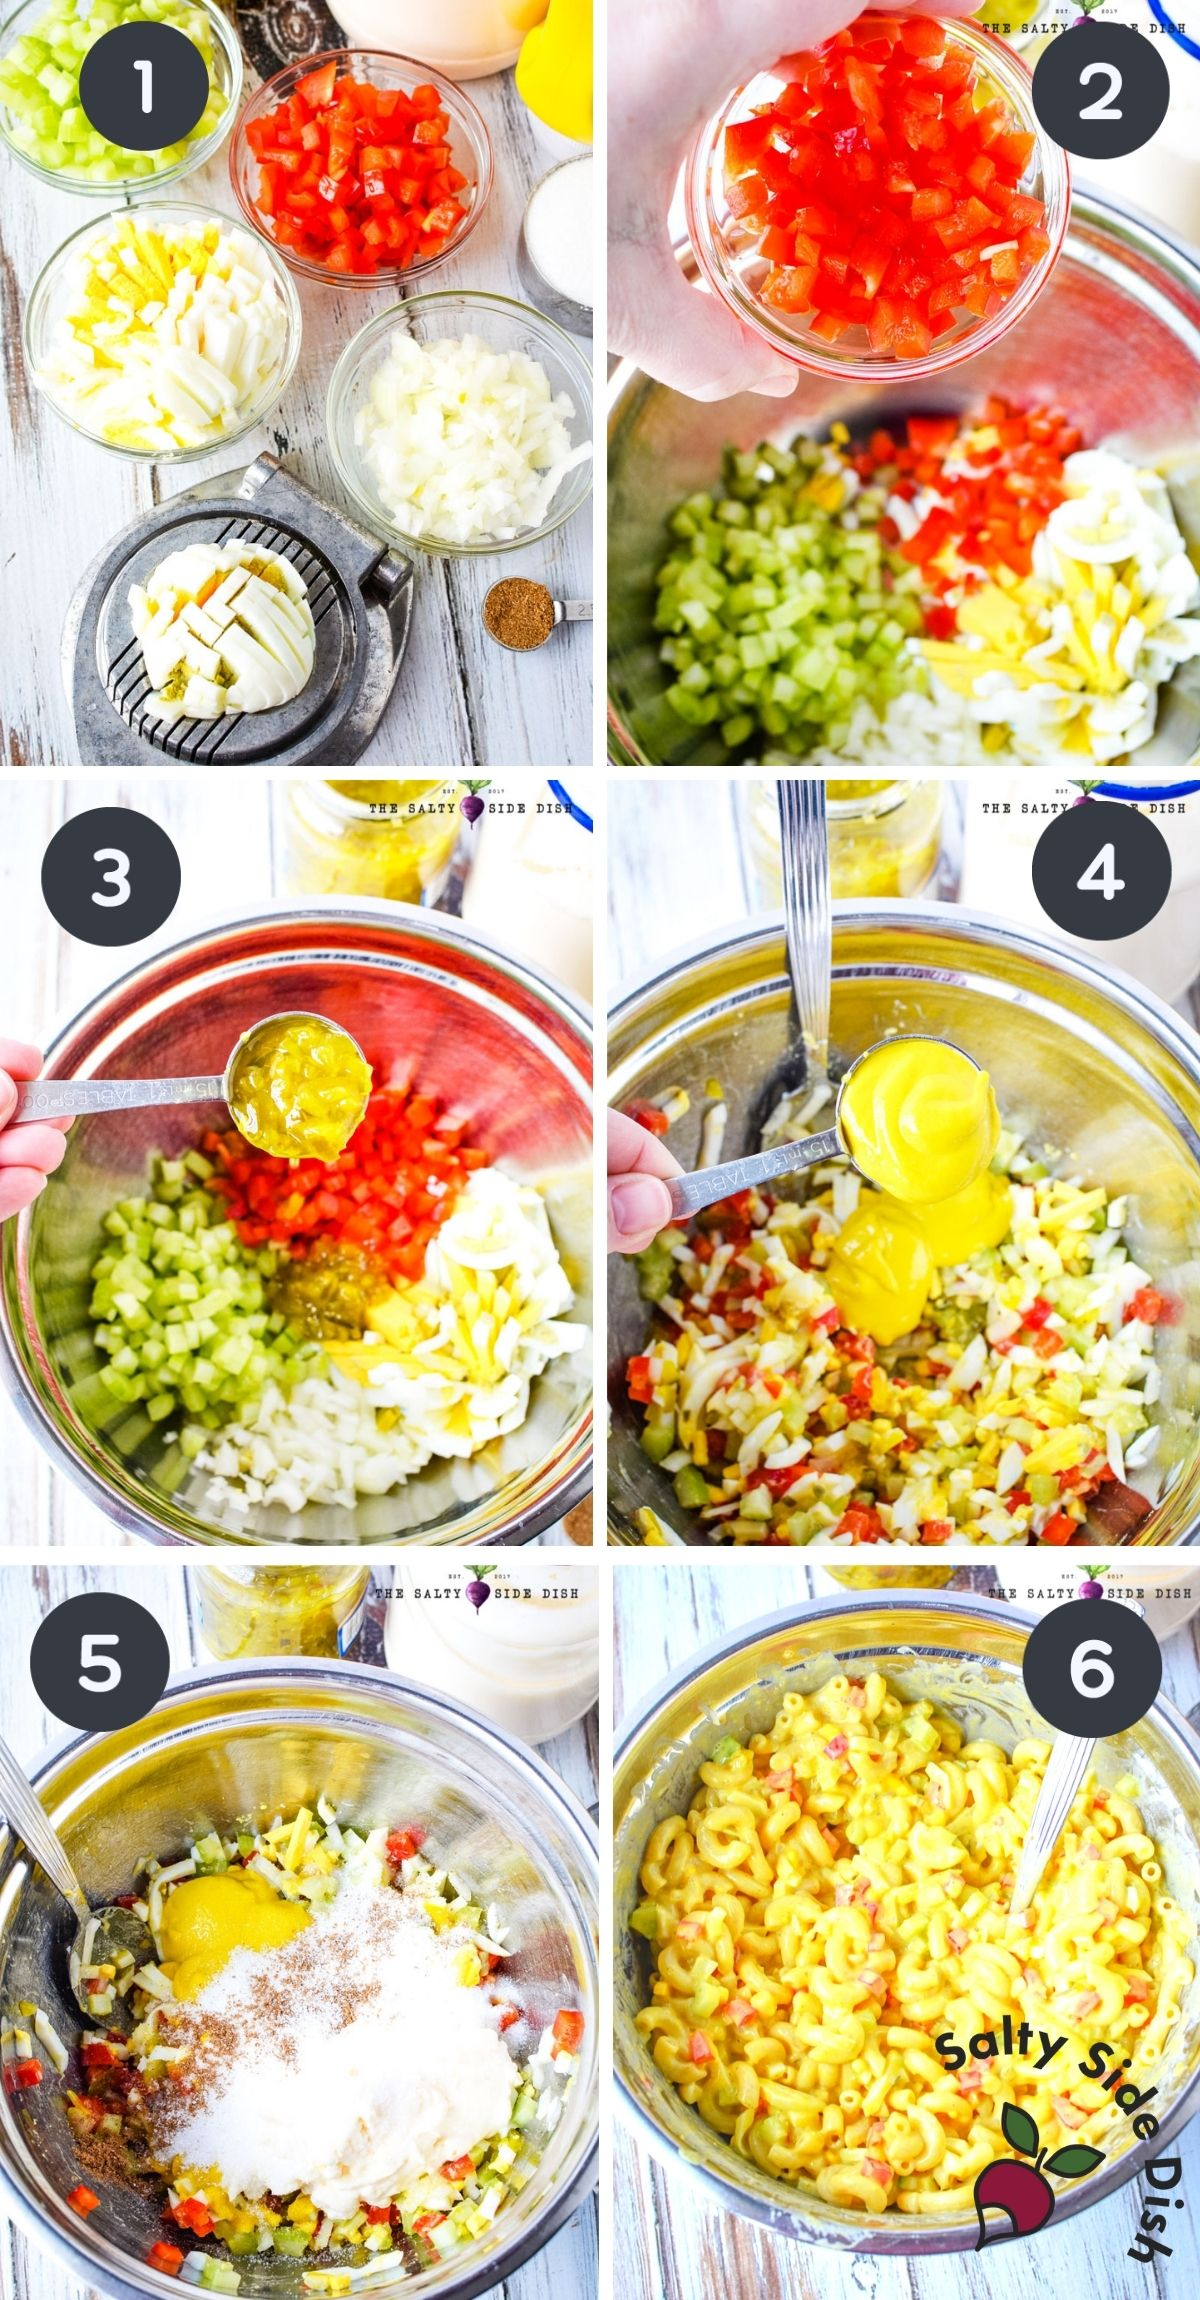 6 image collage of Amish macaroni salad labeled step by step.